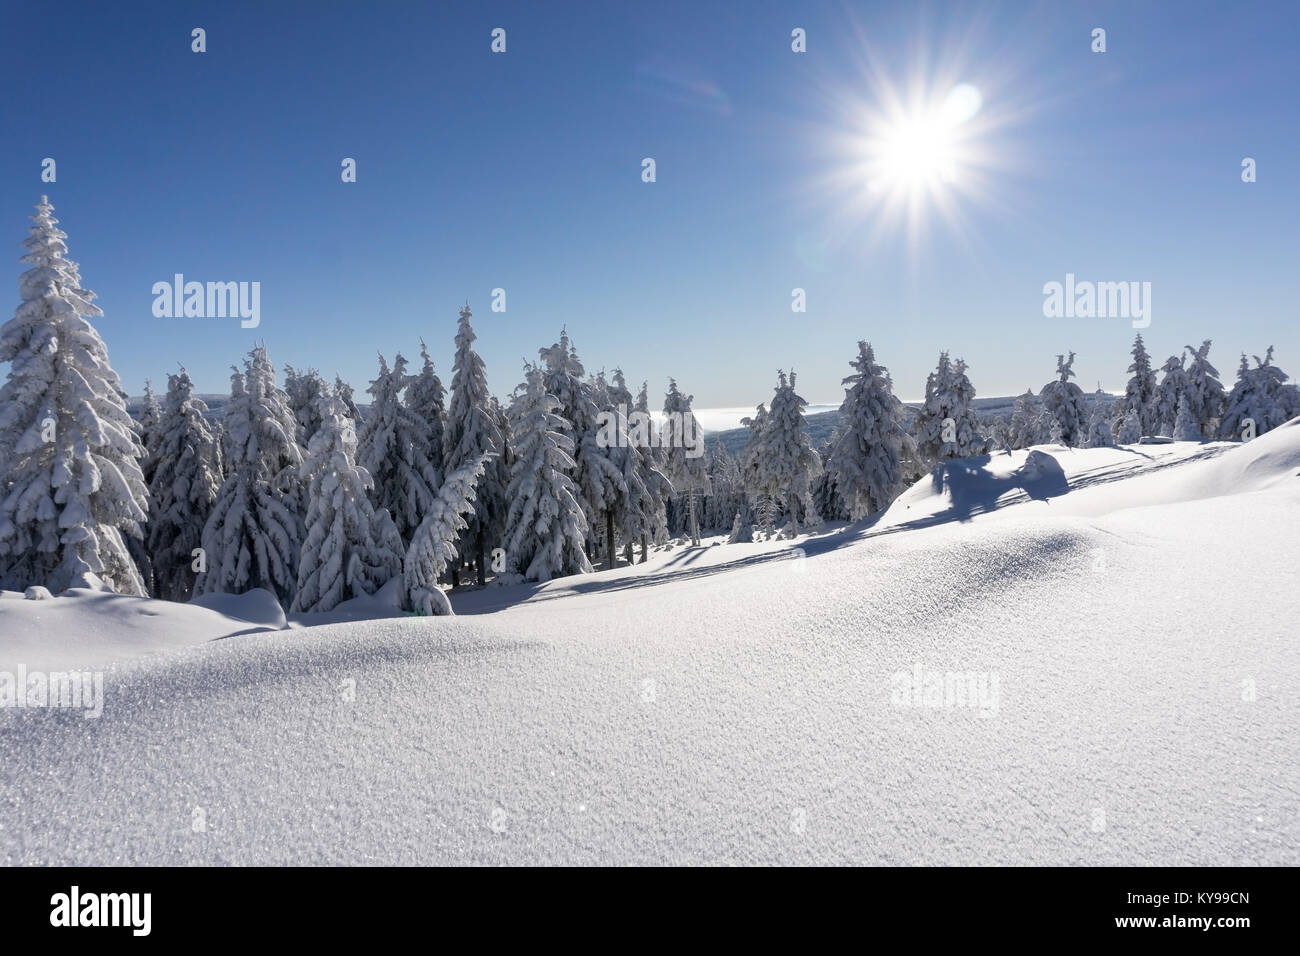 Winter trees in mountains covered with fresh snow in sunny day. Karkonosze,  Giant Mountains, Poland. - Stock Image